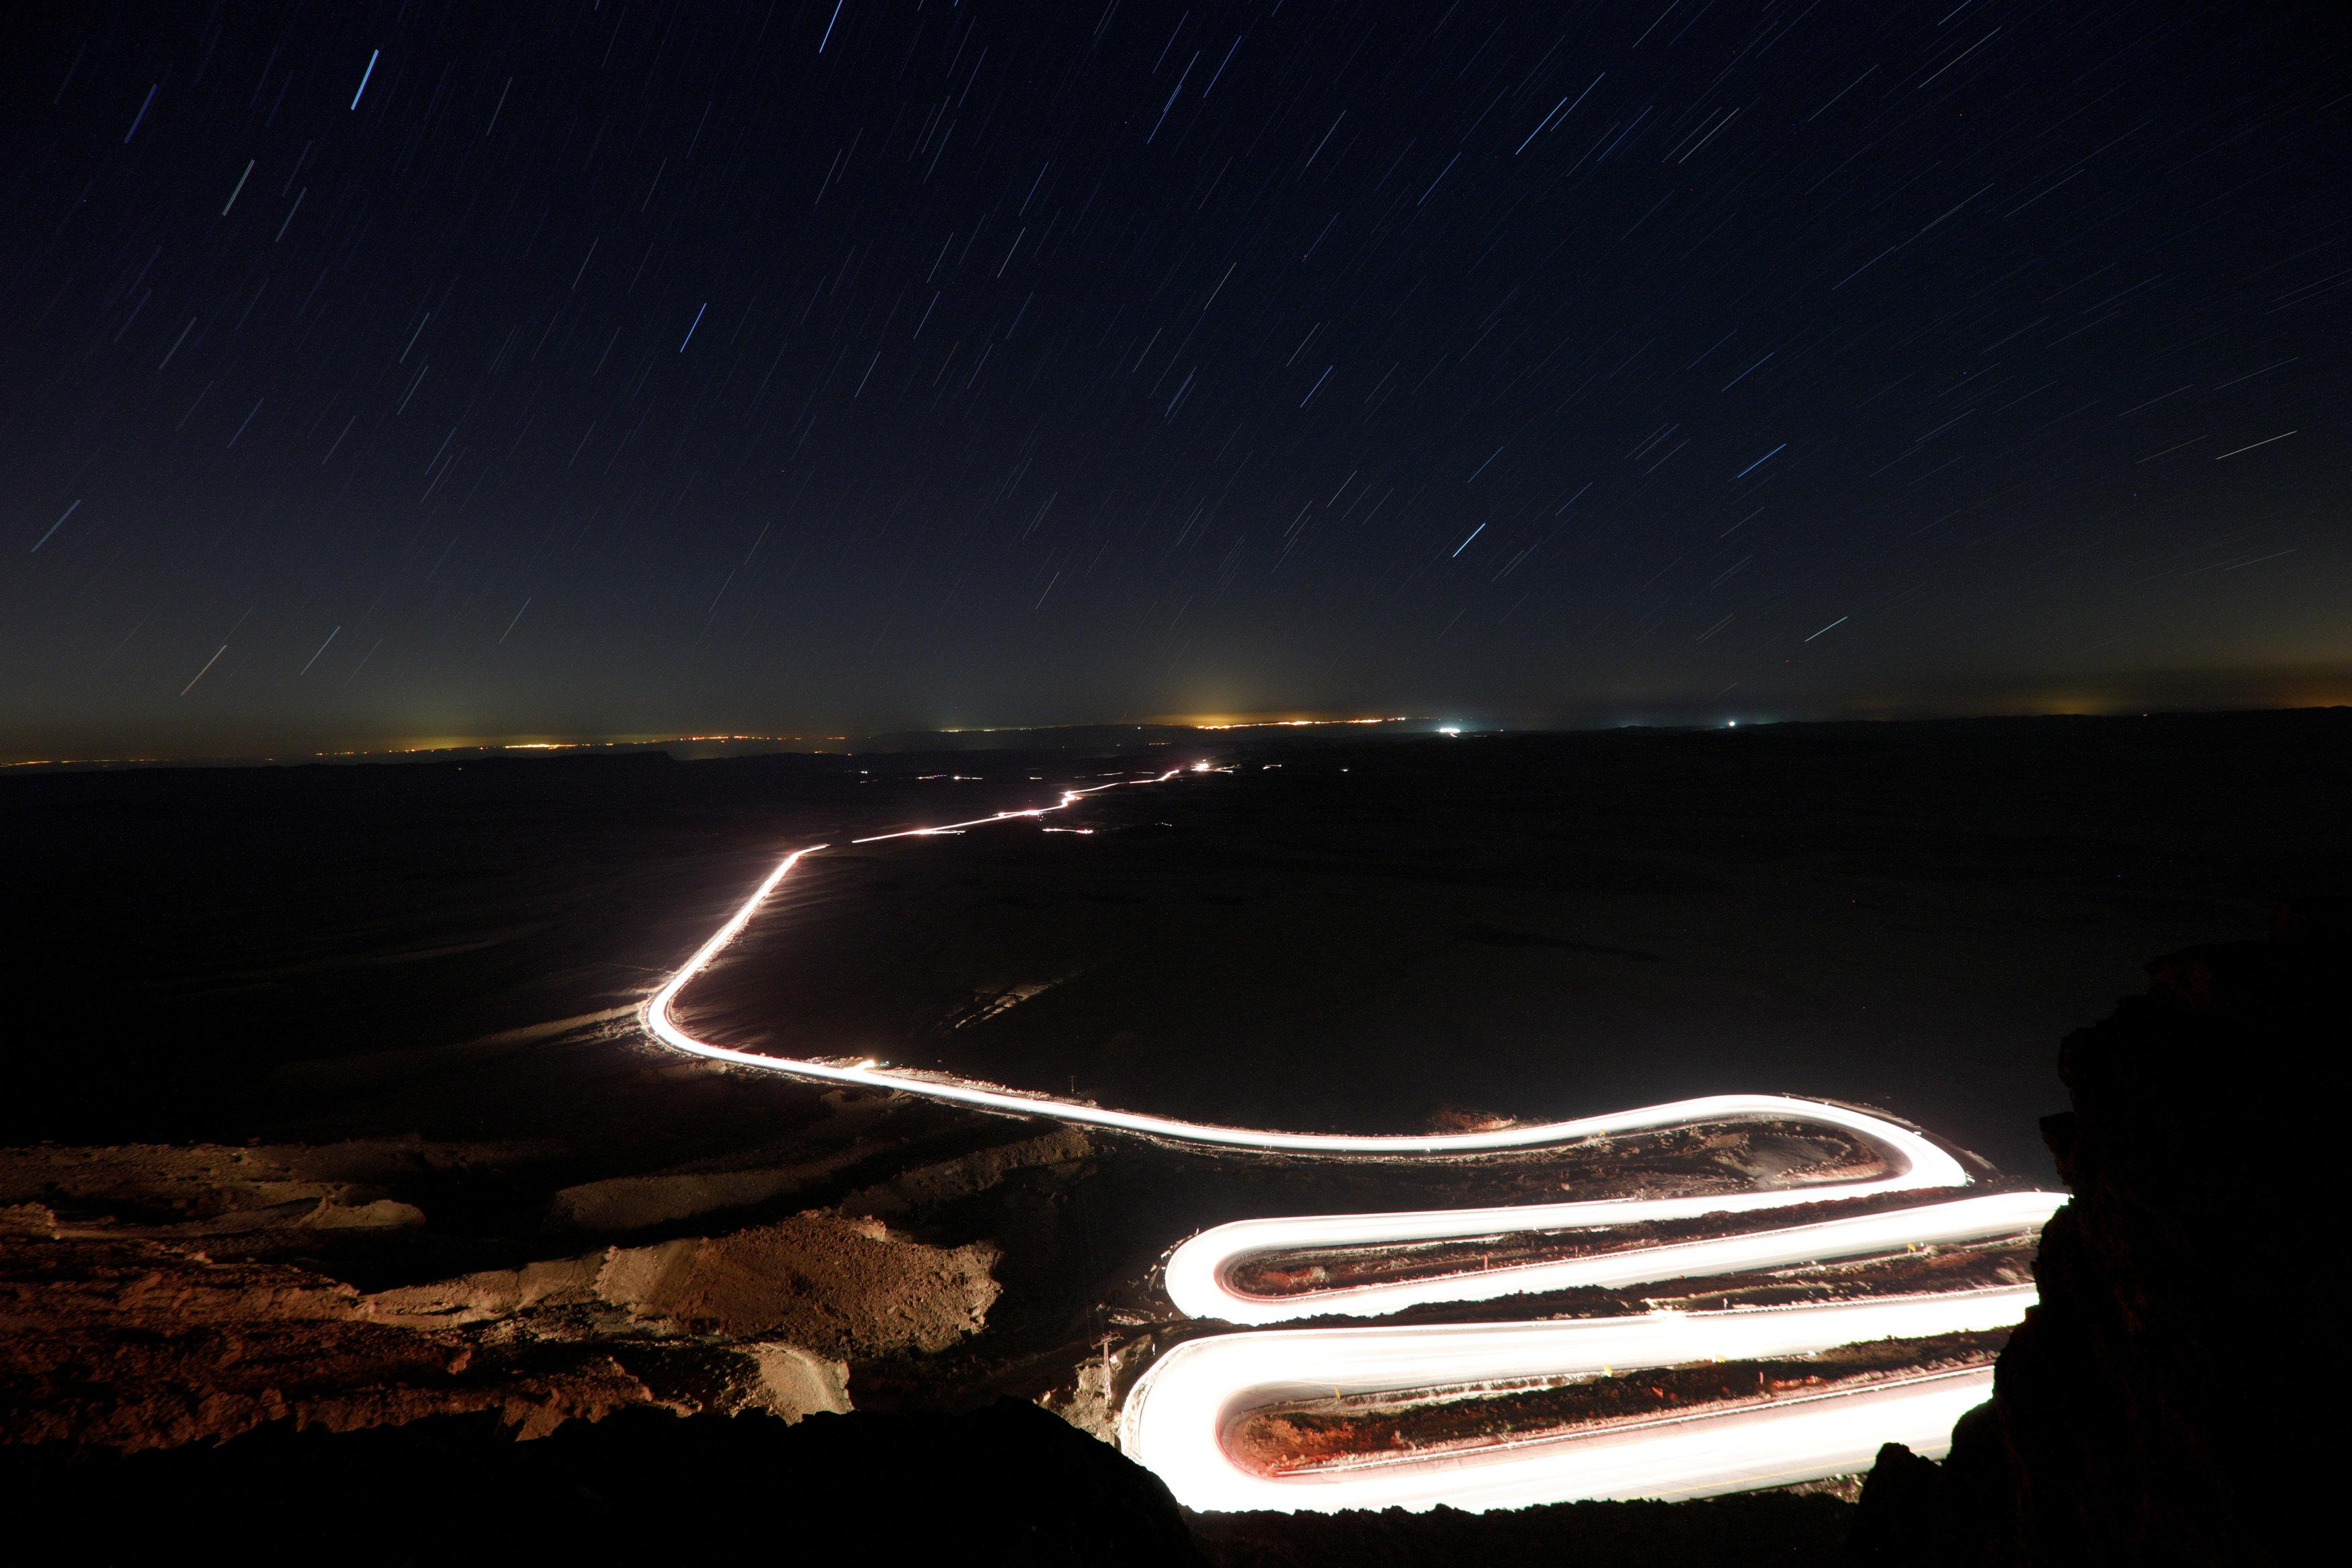 Cars drive through Ramon Crater during the Perseid meteor shower near the town of Mitzpe Ramon, southern Israel, August 12, 2018. Amir Cohen